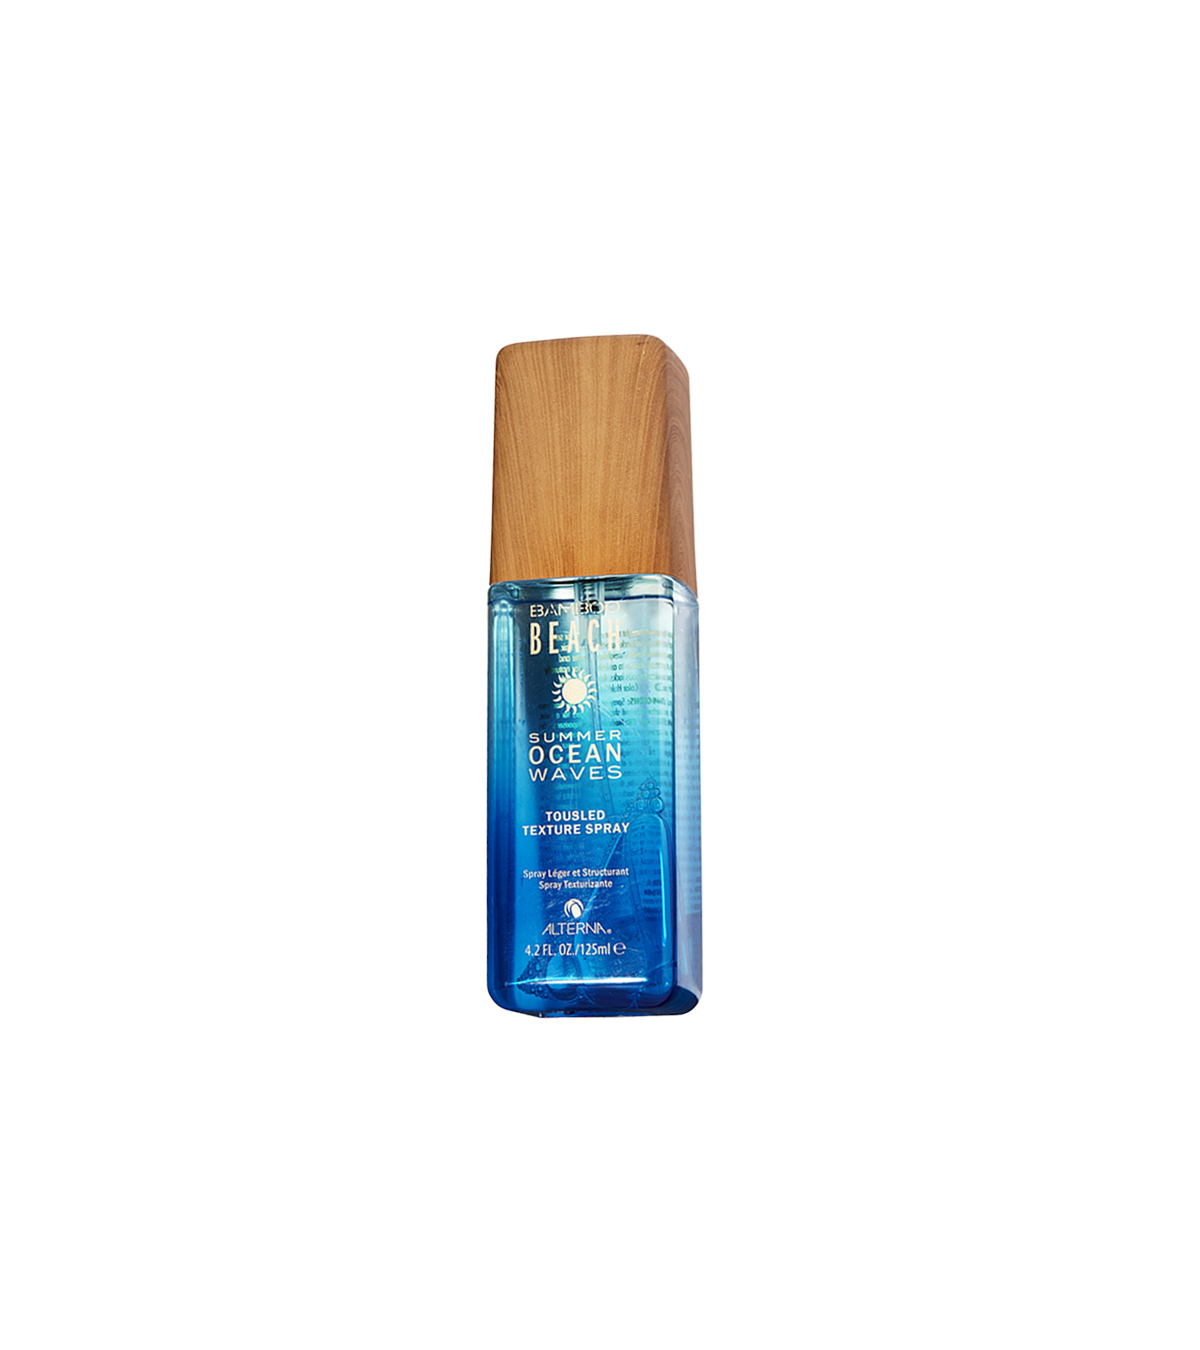 Bamboo Beach Summer Ocean Waves Tousled Texture Spray